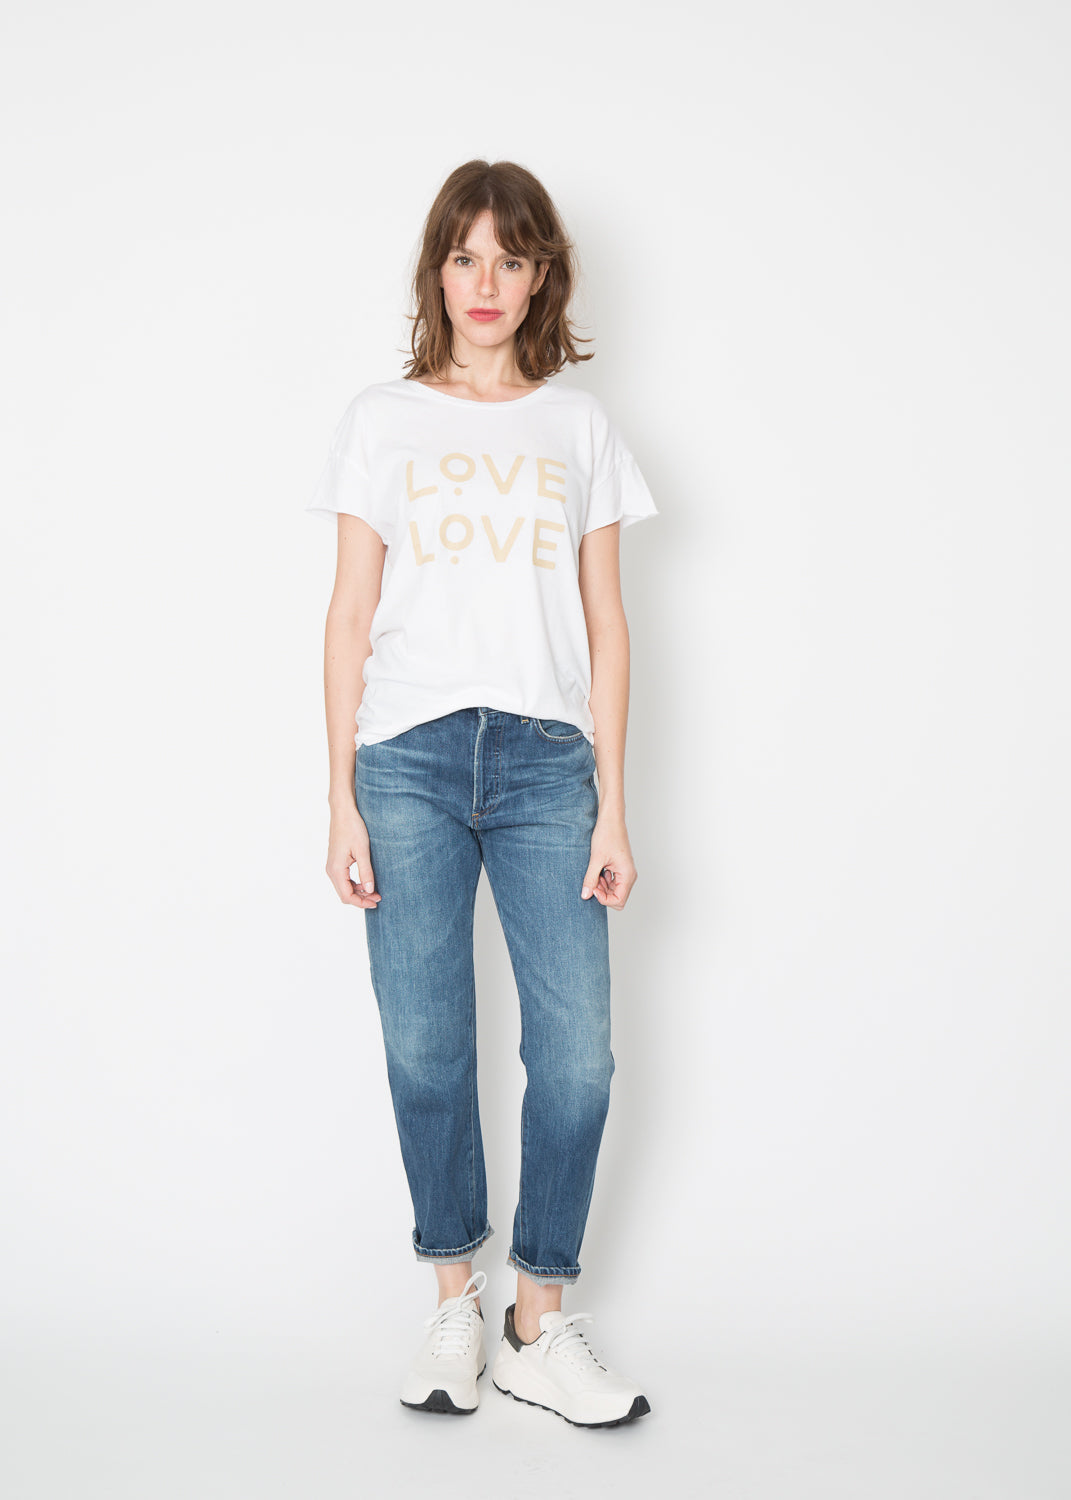 Good Company Love Love Tee